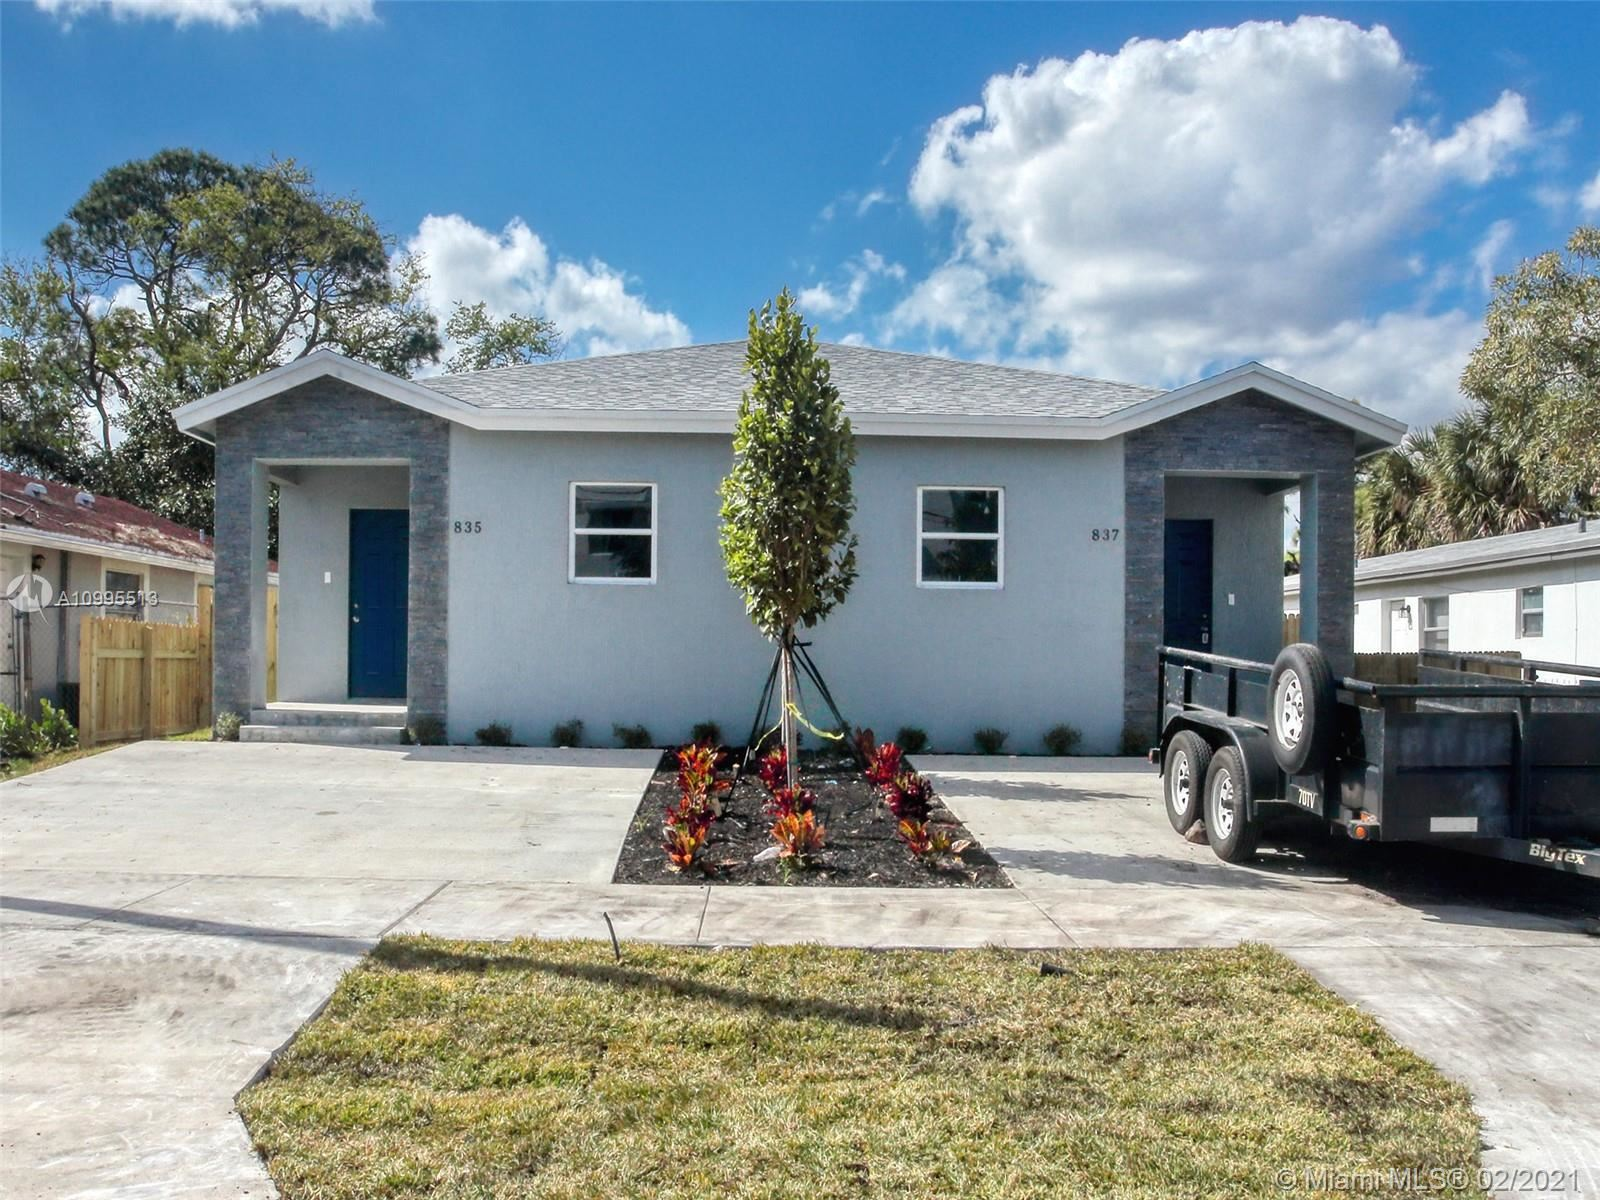 837 NW 14th Way, Fort Lauderdale, FL 33311 - #: A10995513